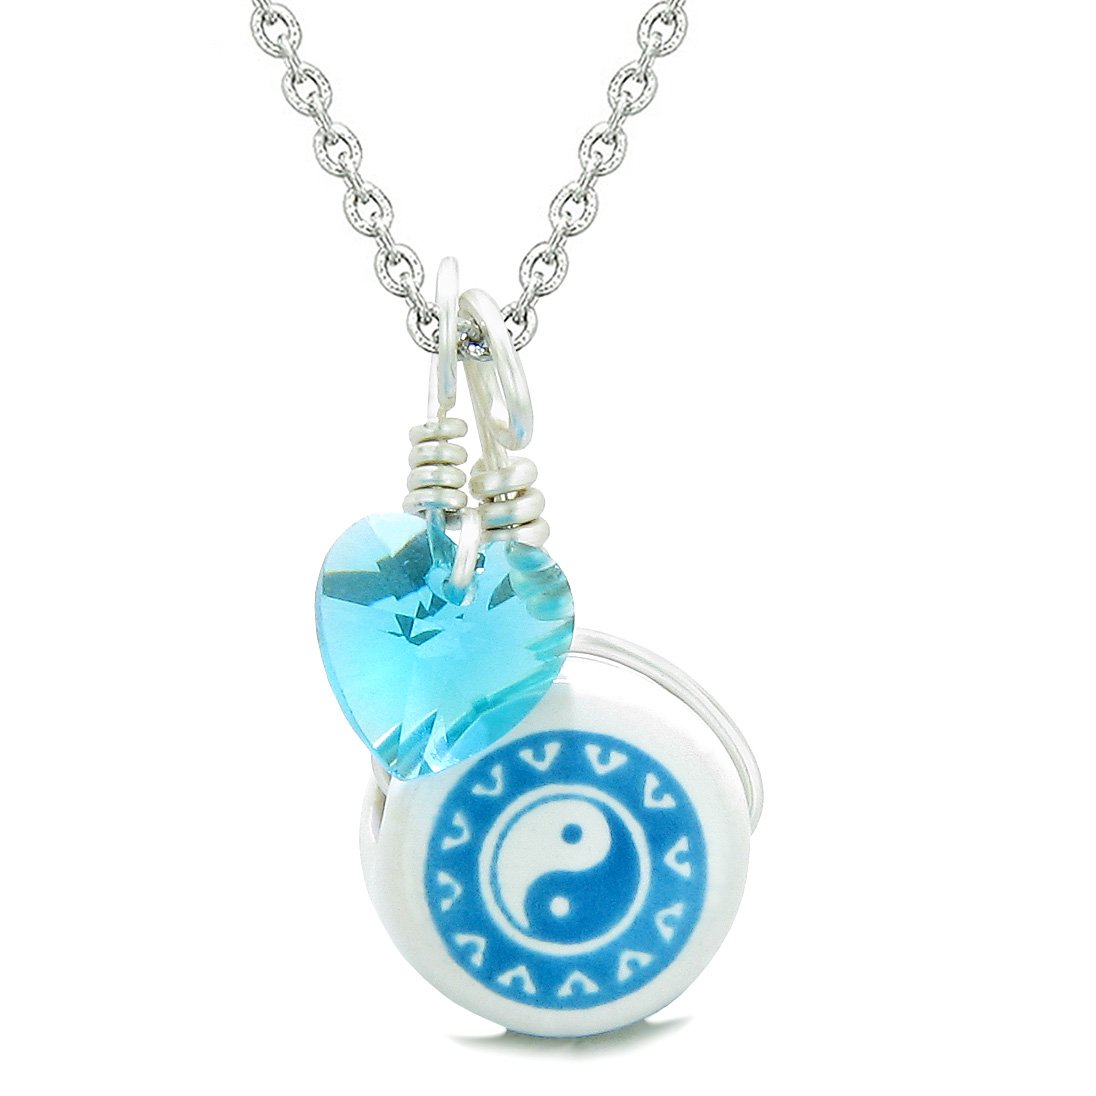 Handcrafted Cute Ceramic Lucky Charm Aqua Yin Yang Blue Heart Balance Amulet Pendant 18 Inch Necklace